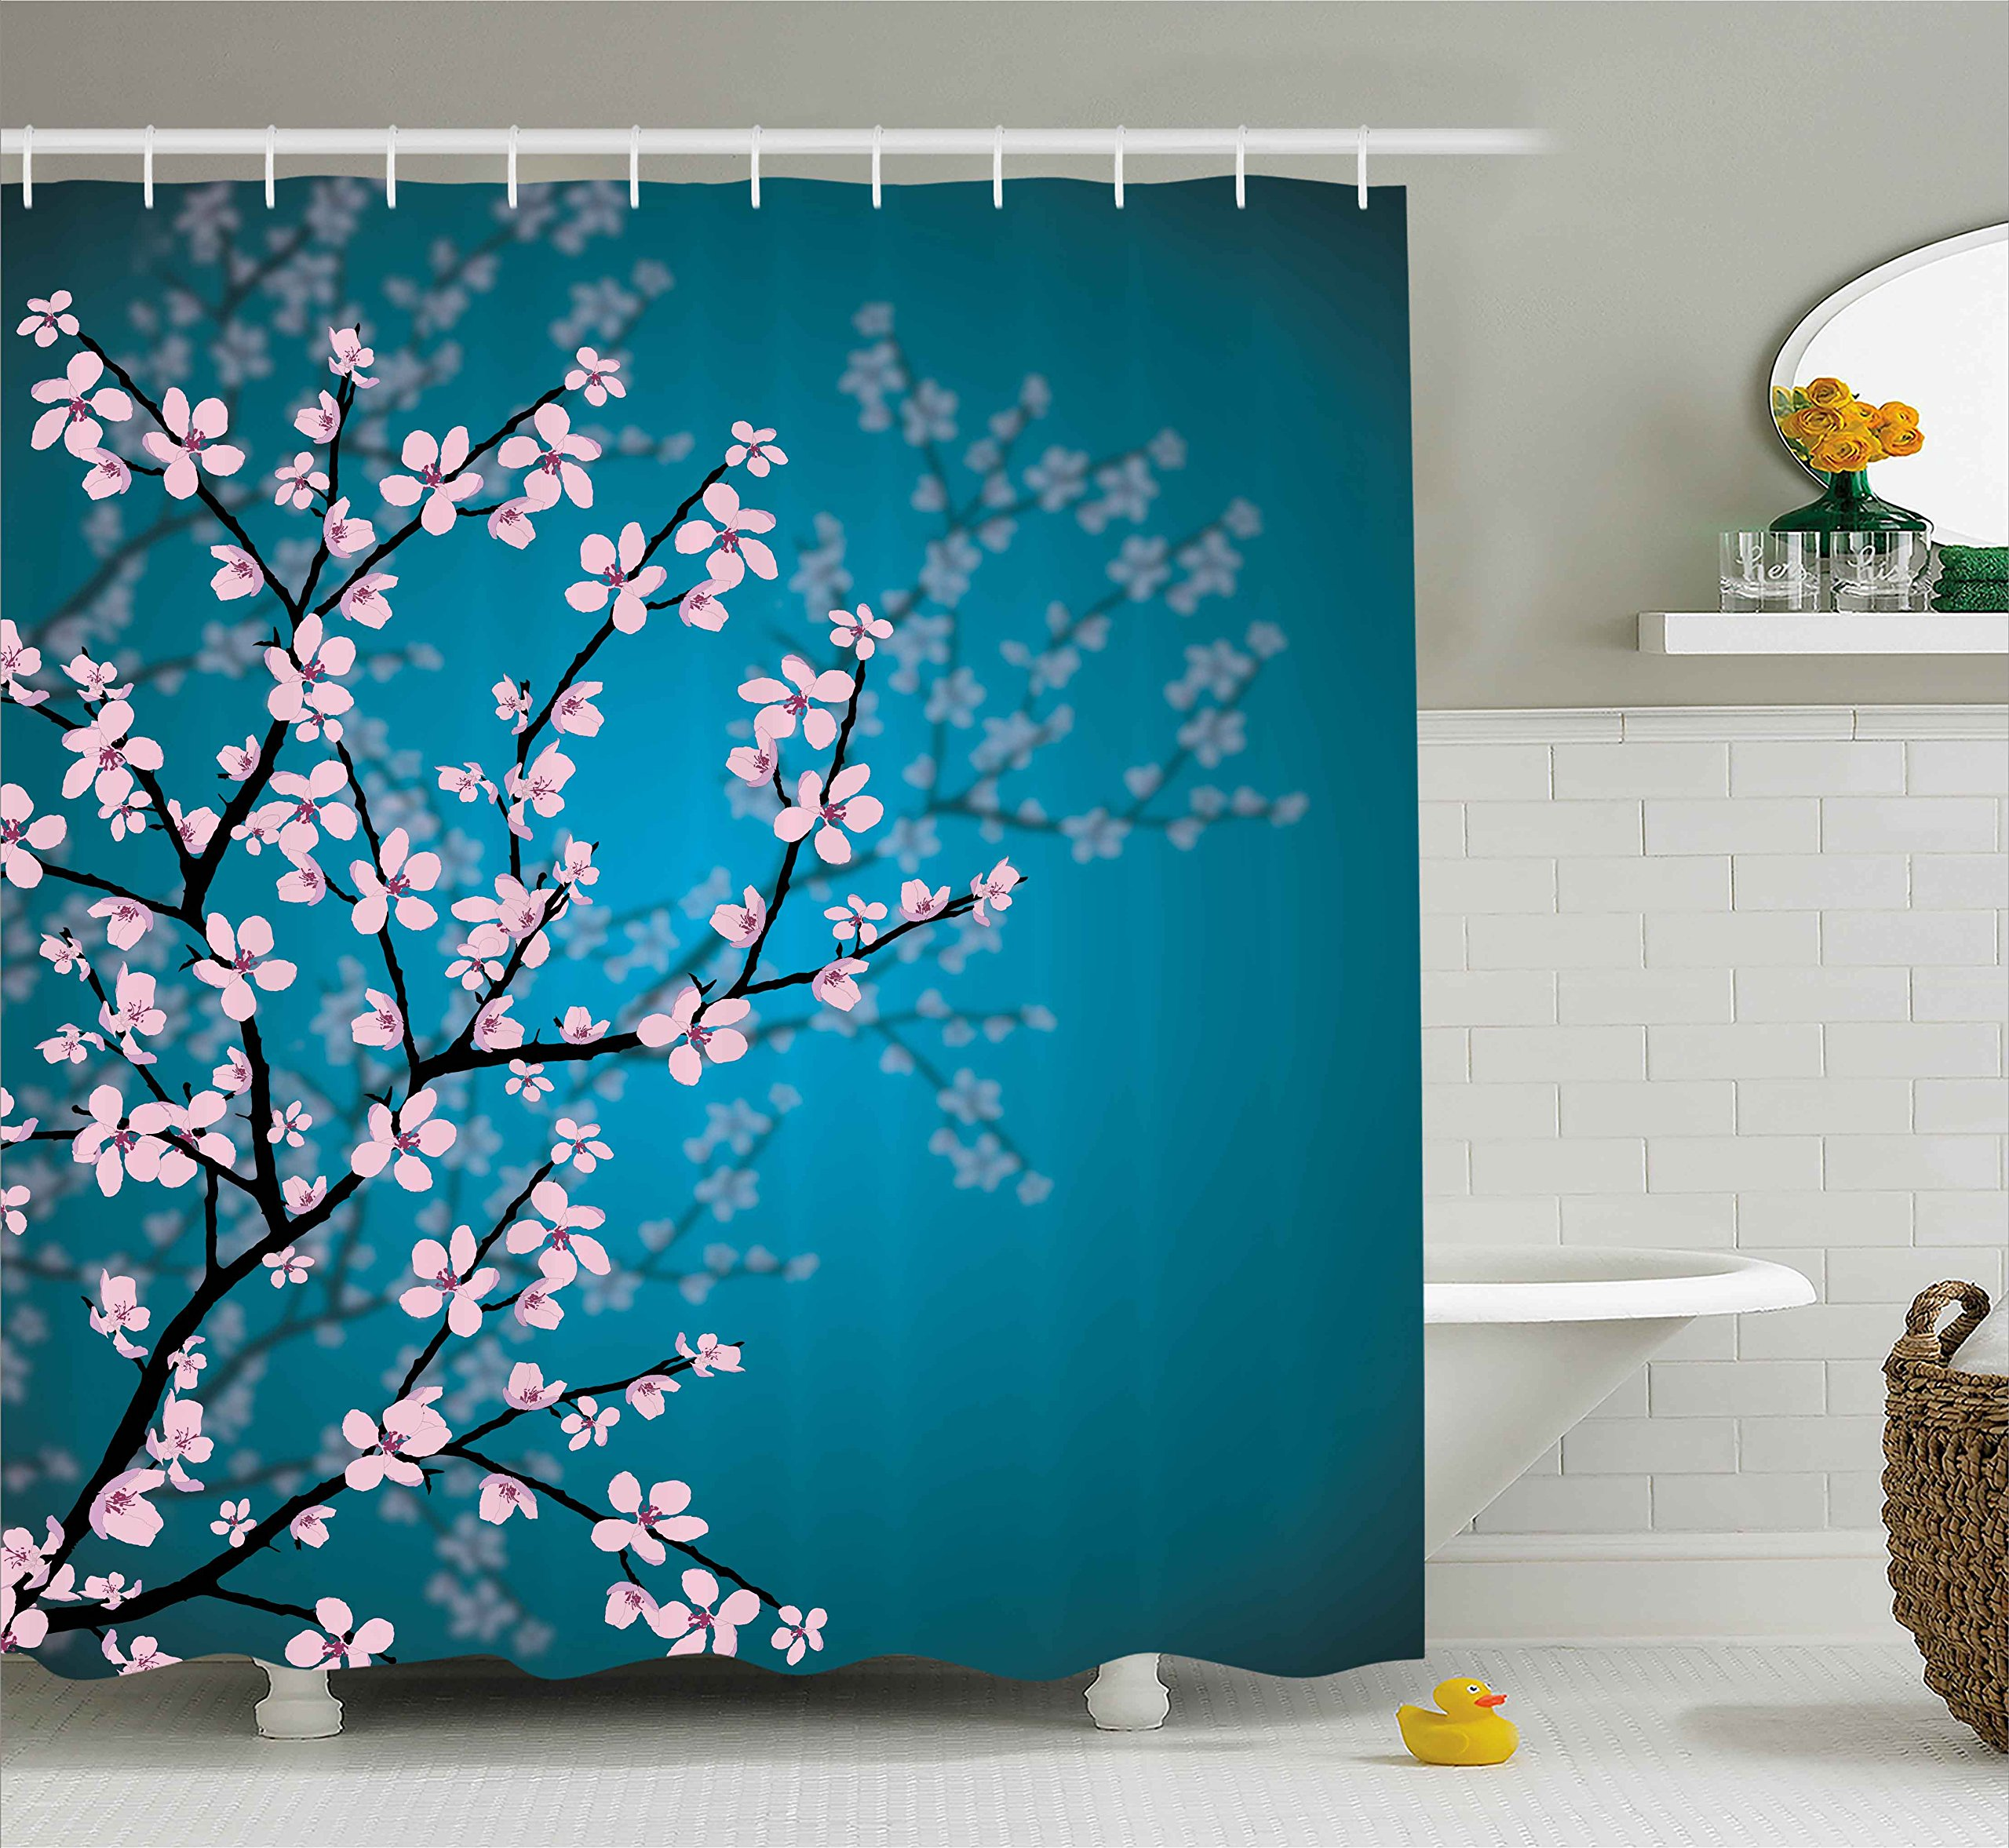 Ambesonne Teal Shower Curtain Pink Blossoms Decor by, Leaves and Plants Ombre Spring Japanese Sakura Flowers in Garden Park, Fabric Bathroom Decorations, with Hooks, Petrol Blue Pink